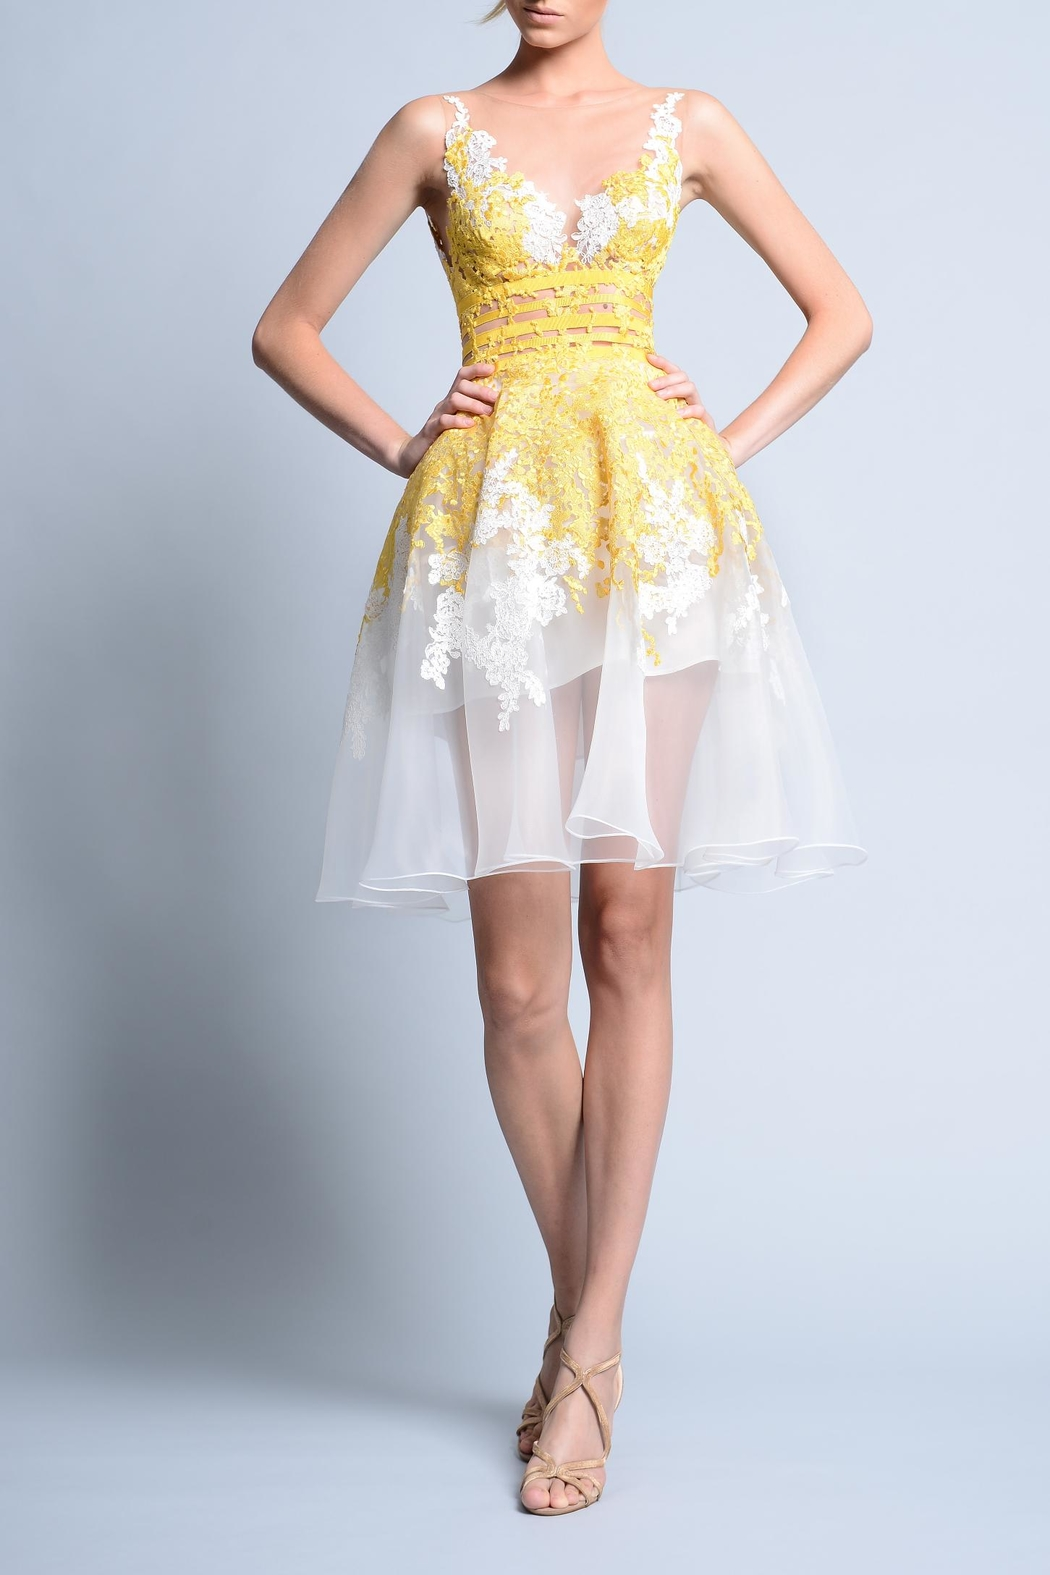 Gemy Maalouf Sleeveless Party Dress - Main Image